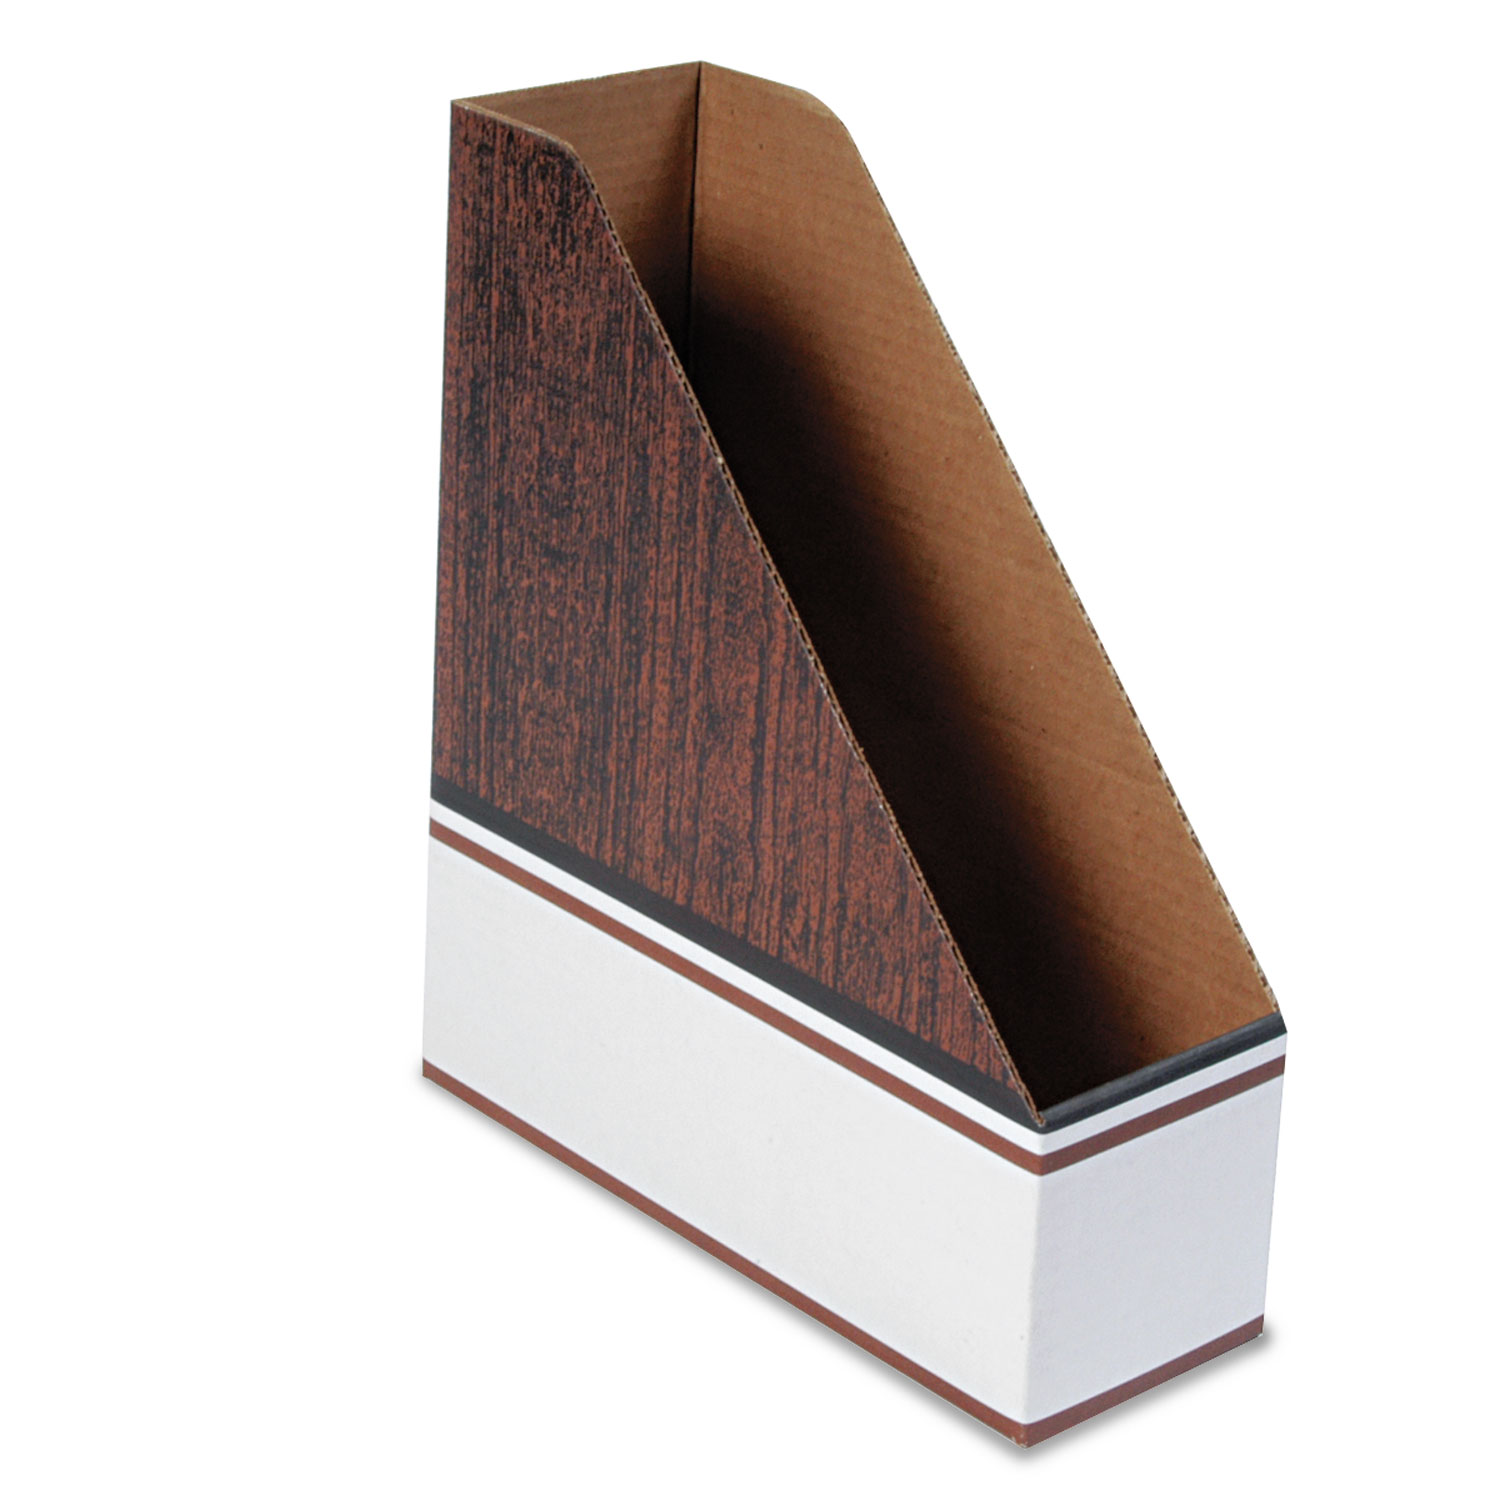 Cardboard Magazine Holder Corrugated Cardboard Magazine File by Bankers Box® FEL41 6